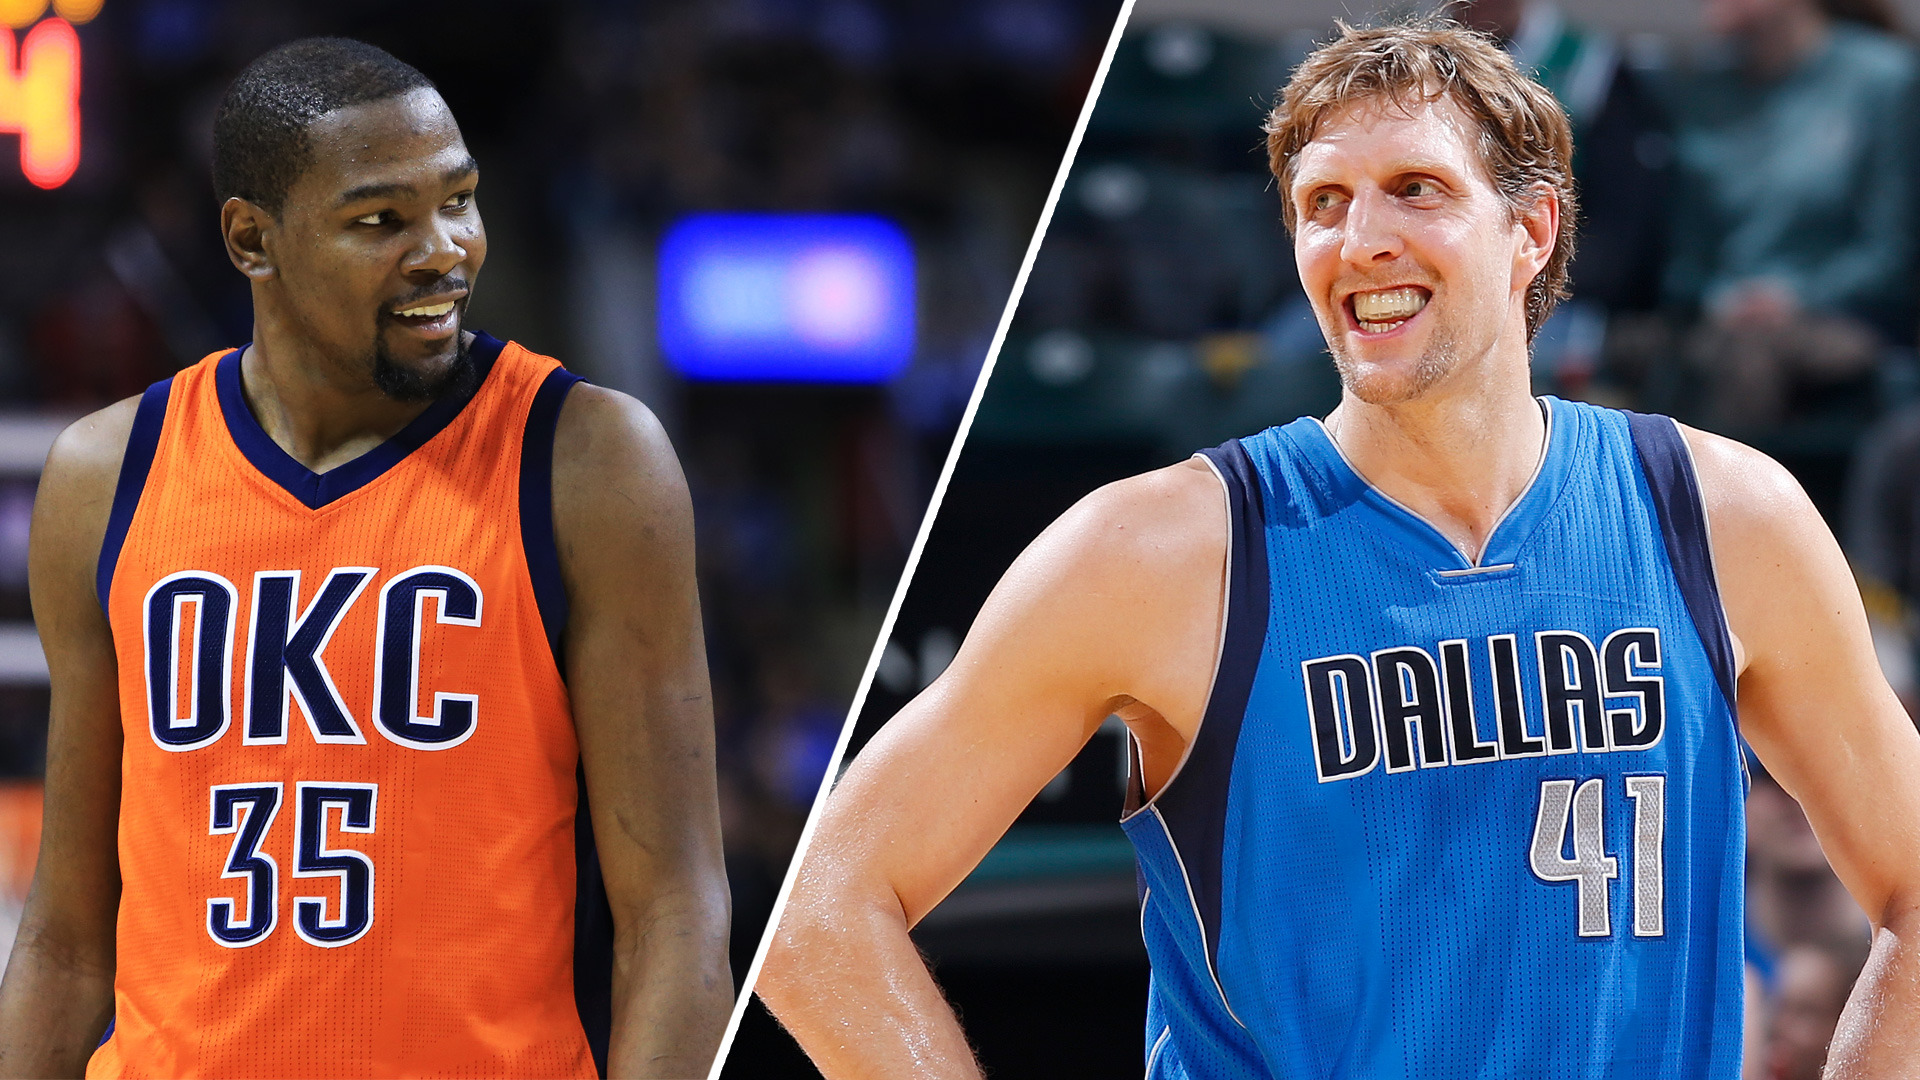 Dirk Nowitzki Kevin Durant likely feels pressure to win a